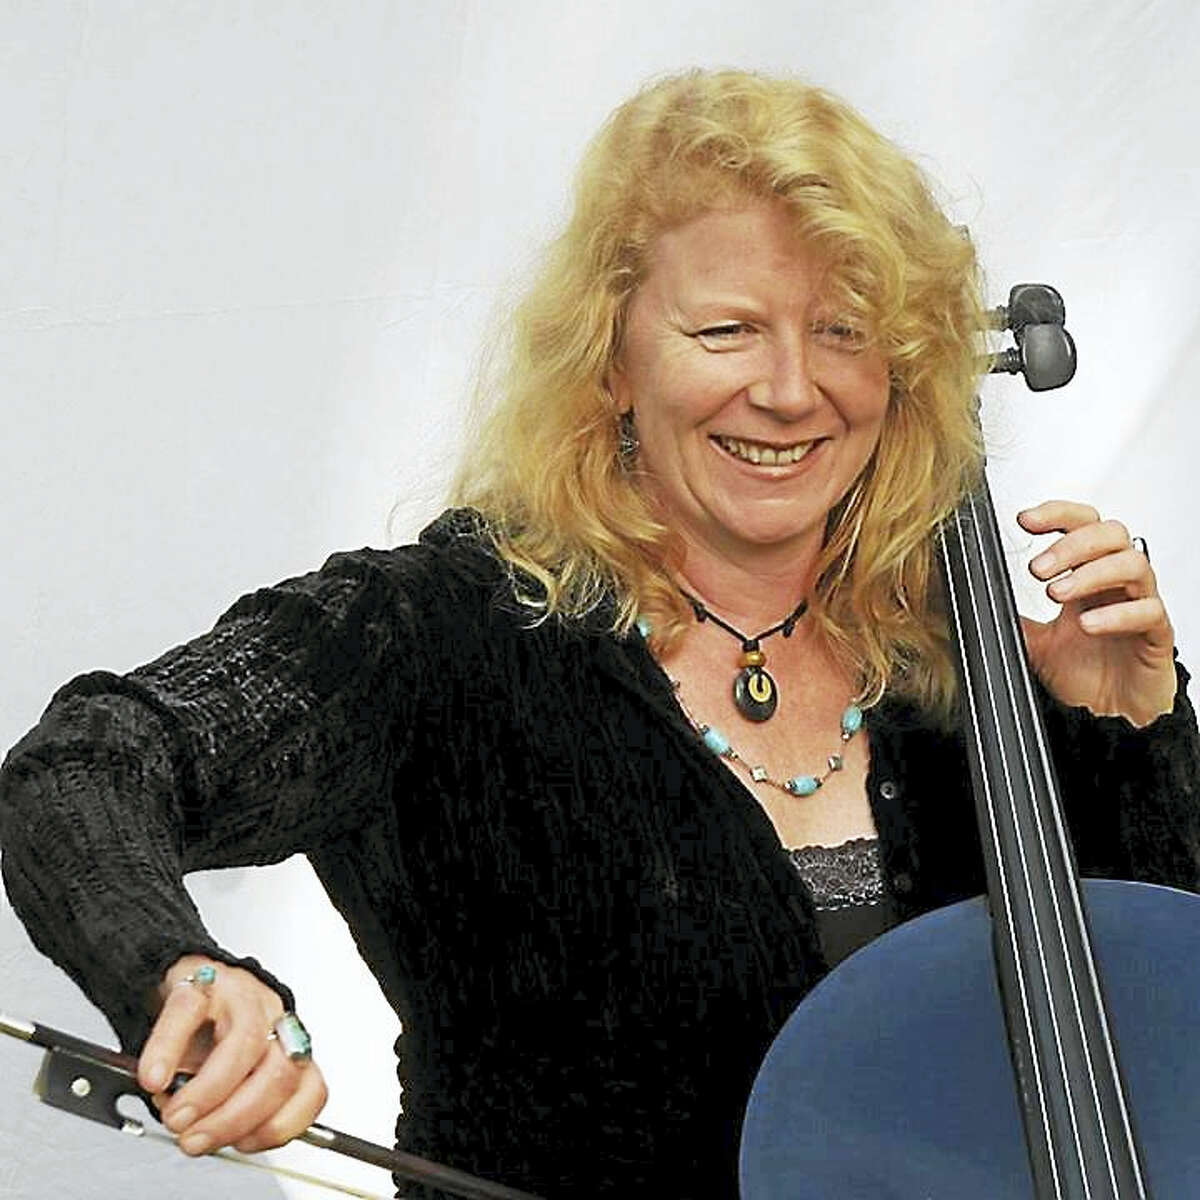 Photo by Martha ColbyCELLISTS' CONCERTGuilford: Cellist Martha Colby will present a concert at 2 p.m. March 20 at Guilford Free Library, 67 Park St. She will perform classical, jazz and original compositions from her nightly show at Yellowstone National Park. RSVP: at reference desk, www.guilfordfreelibrary.org, 203- 453-8282.